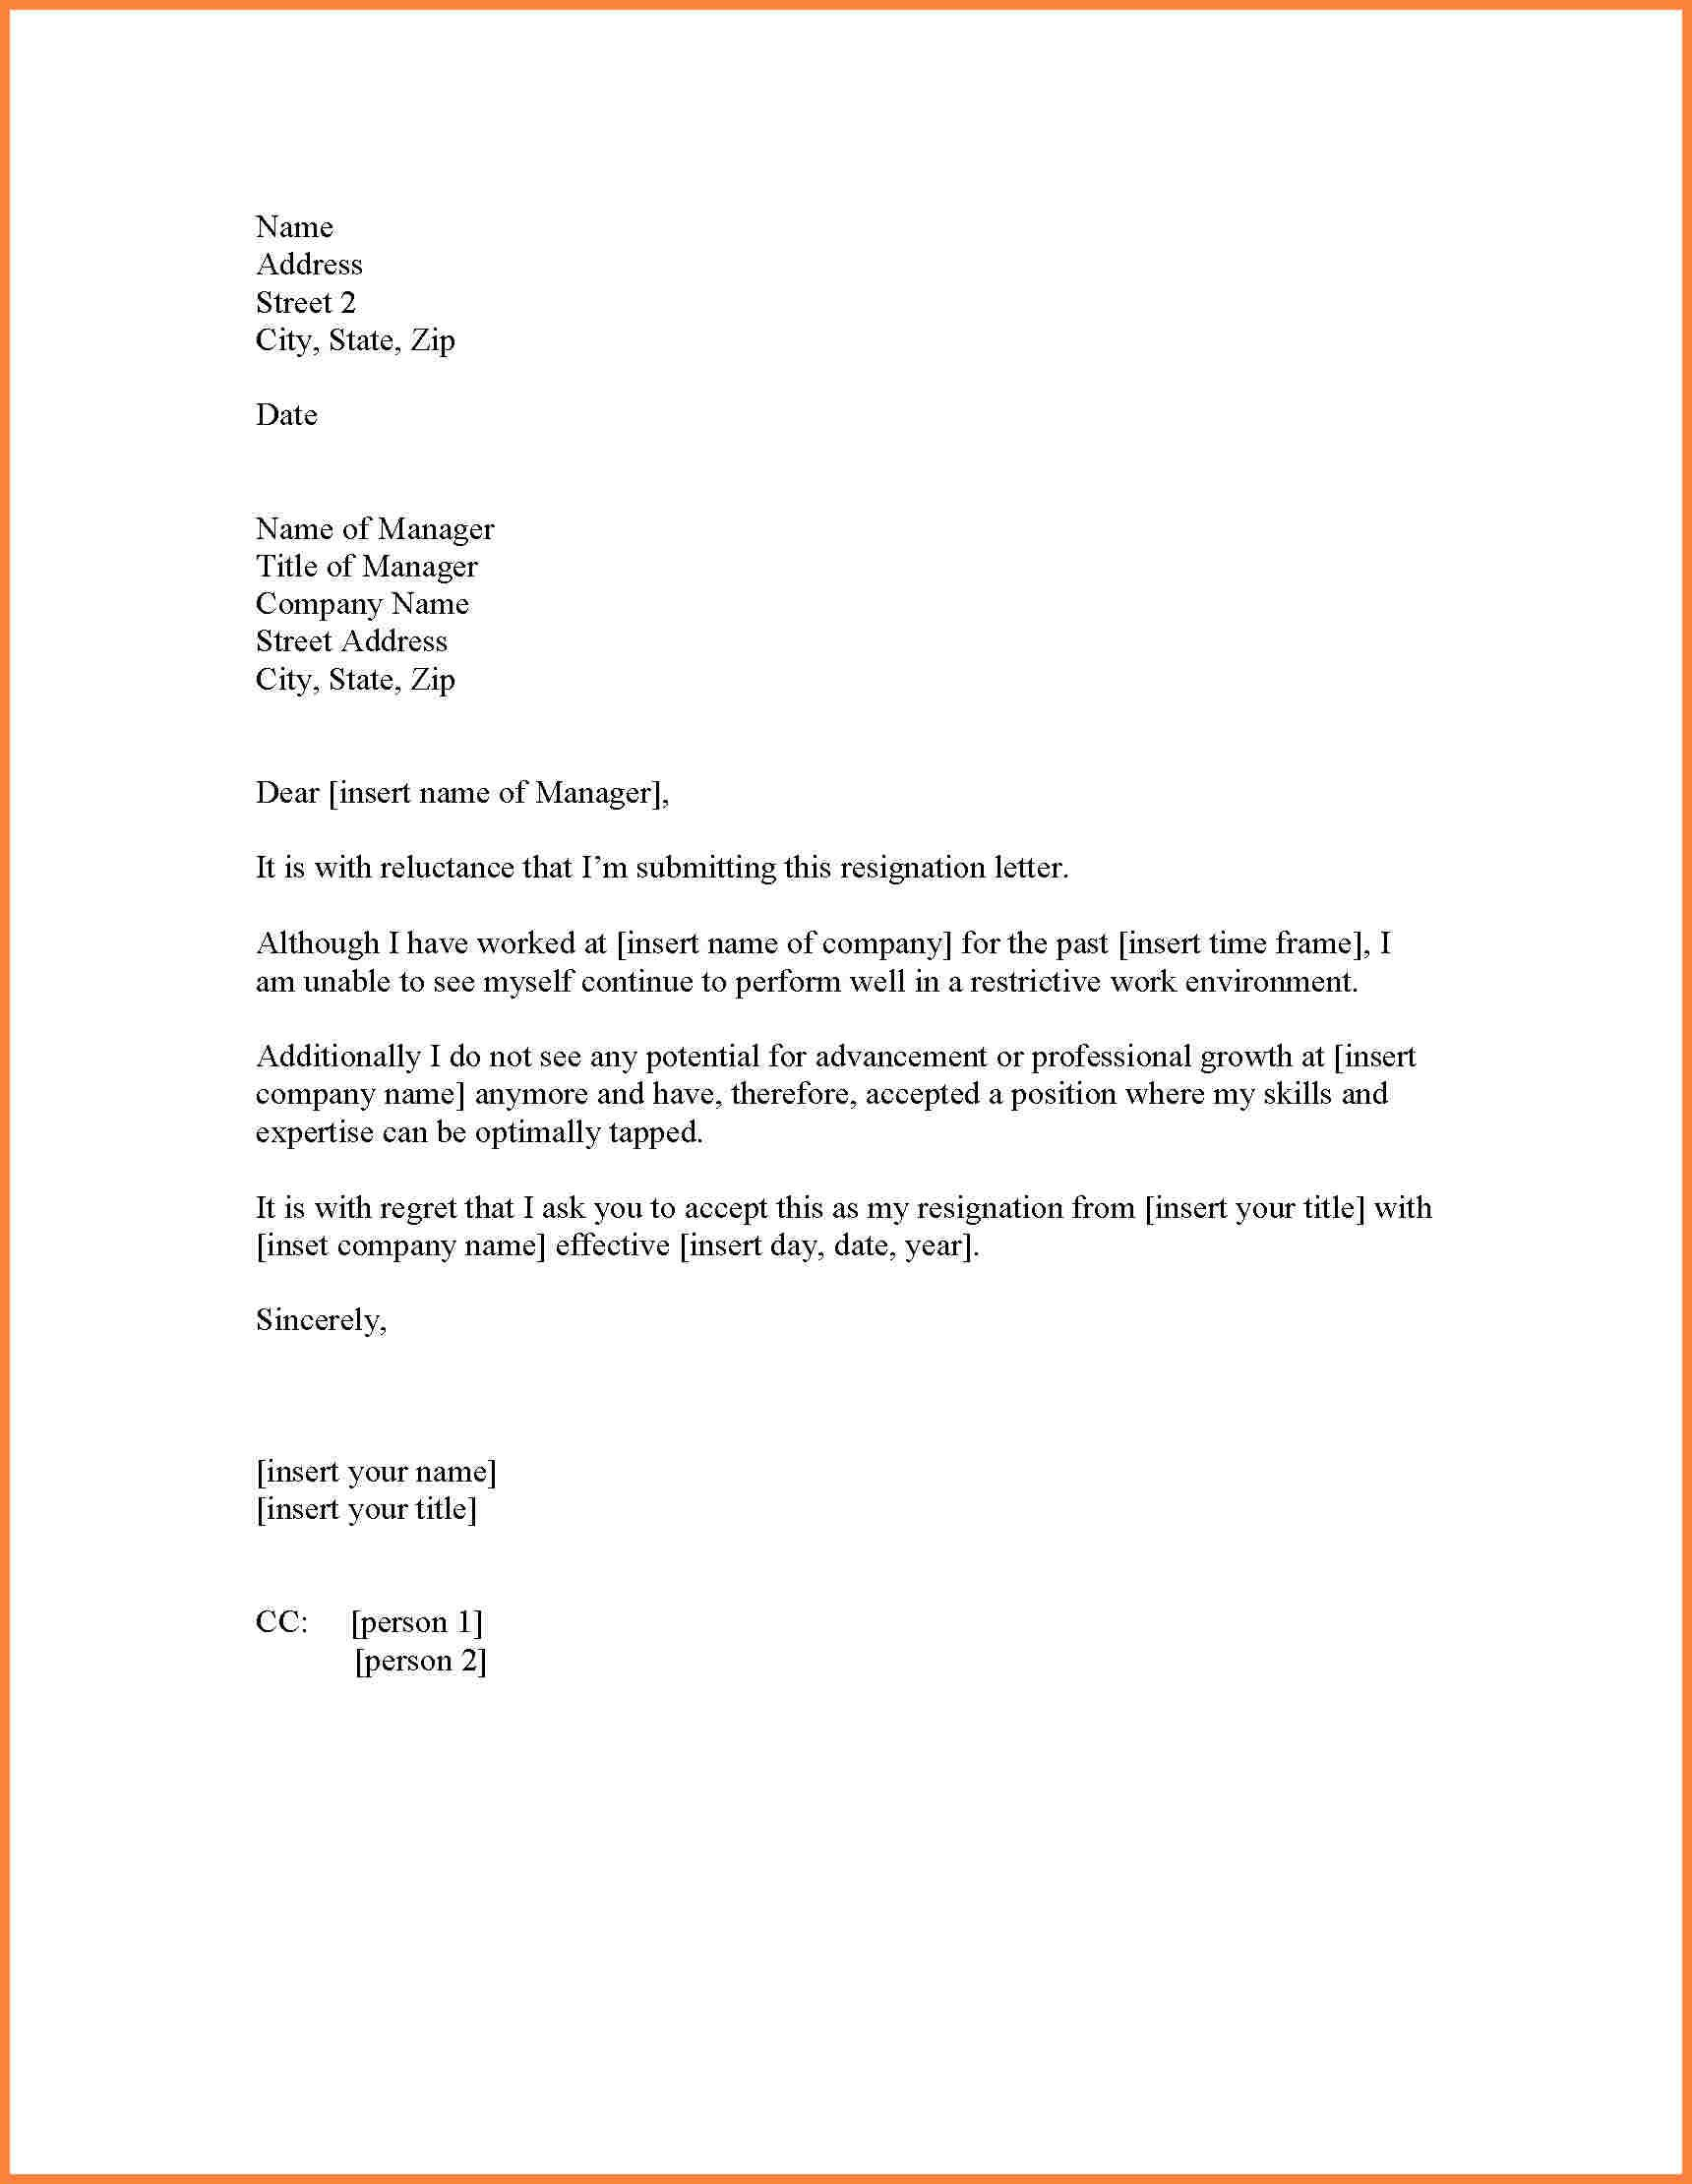 Best Resignation Letter For Personal Reasons Resignation Letter  For Personal Reasons The Legal Profession Depends On Clear And Exact Language Cover  Letter  ...